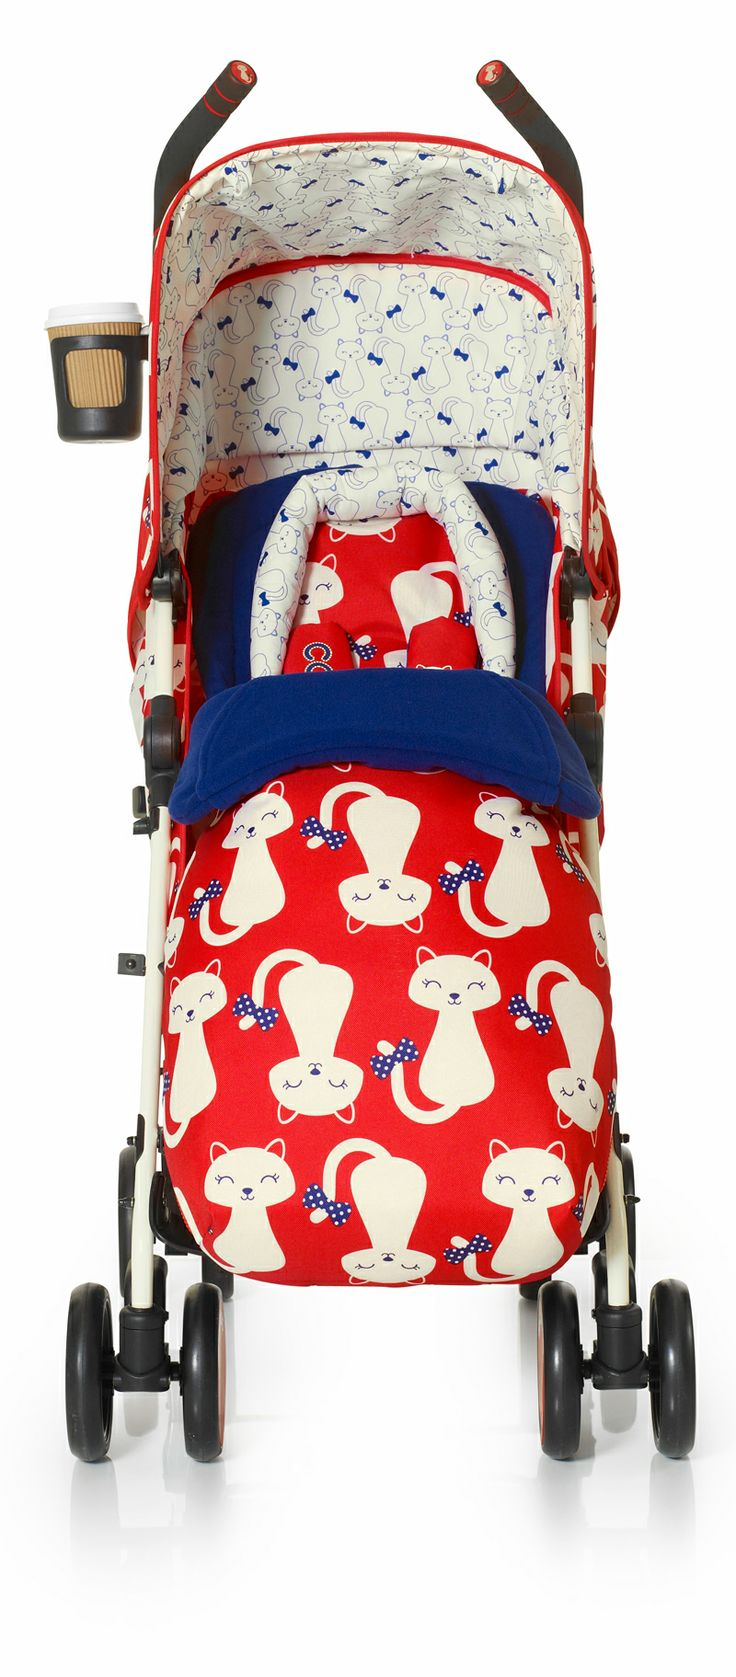 Supa Pushchair from Cosatto. WHY is this stroller not sold